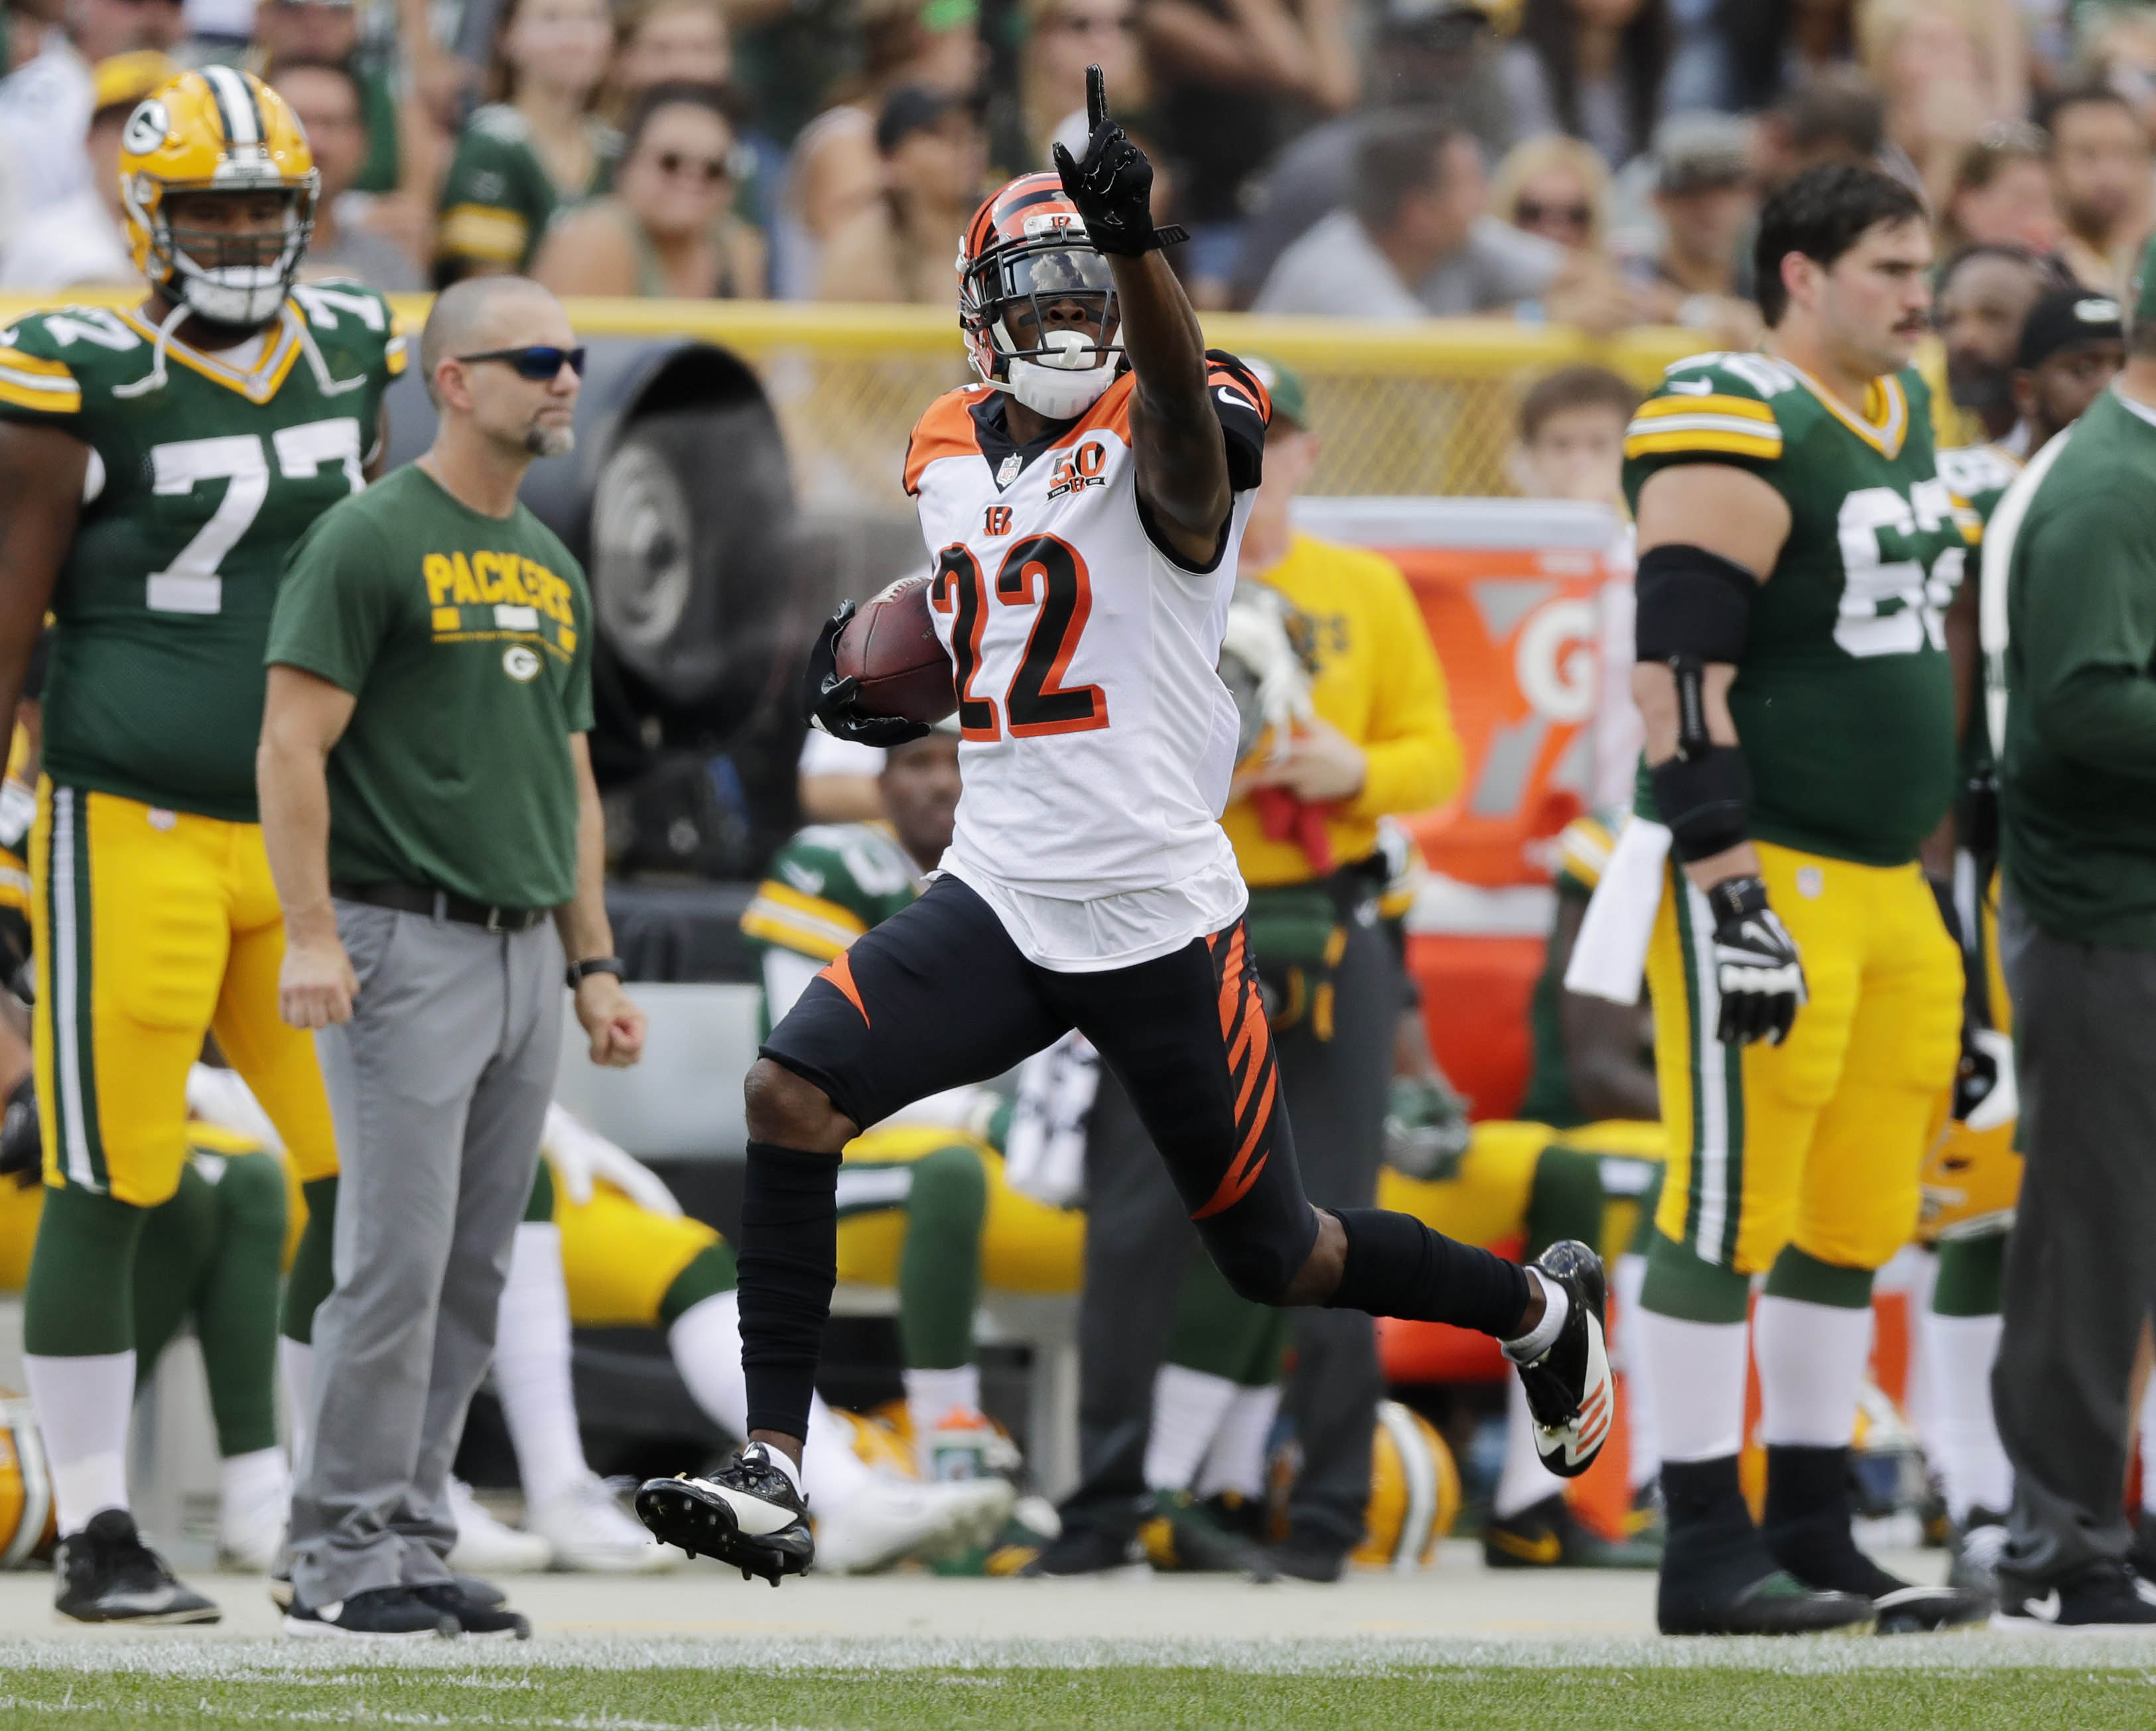 Bengals CB William Jackson has been dominant against top opponents